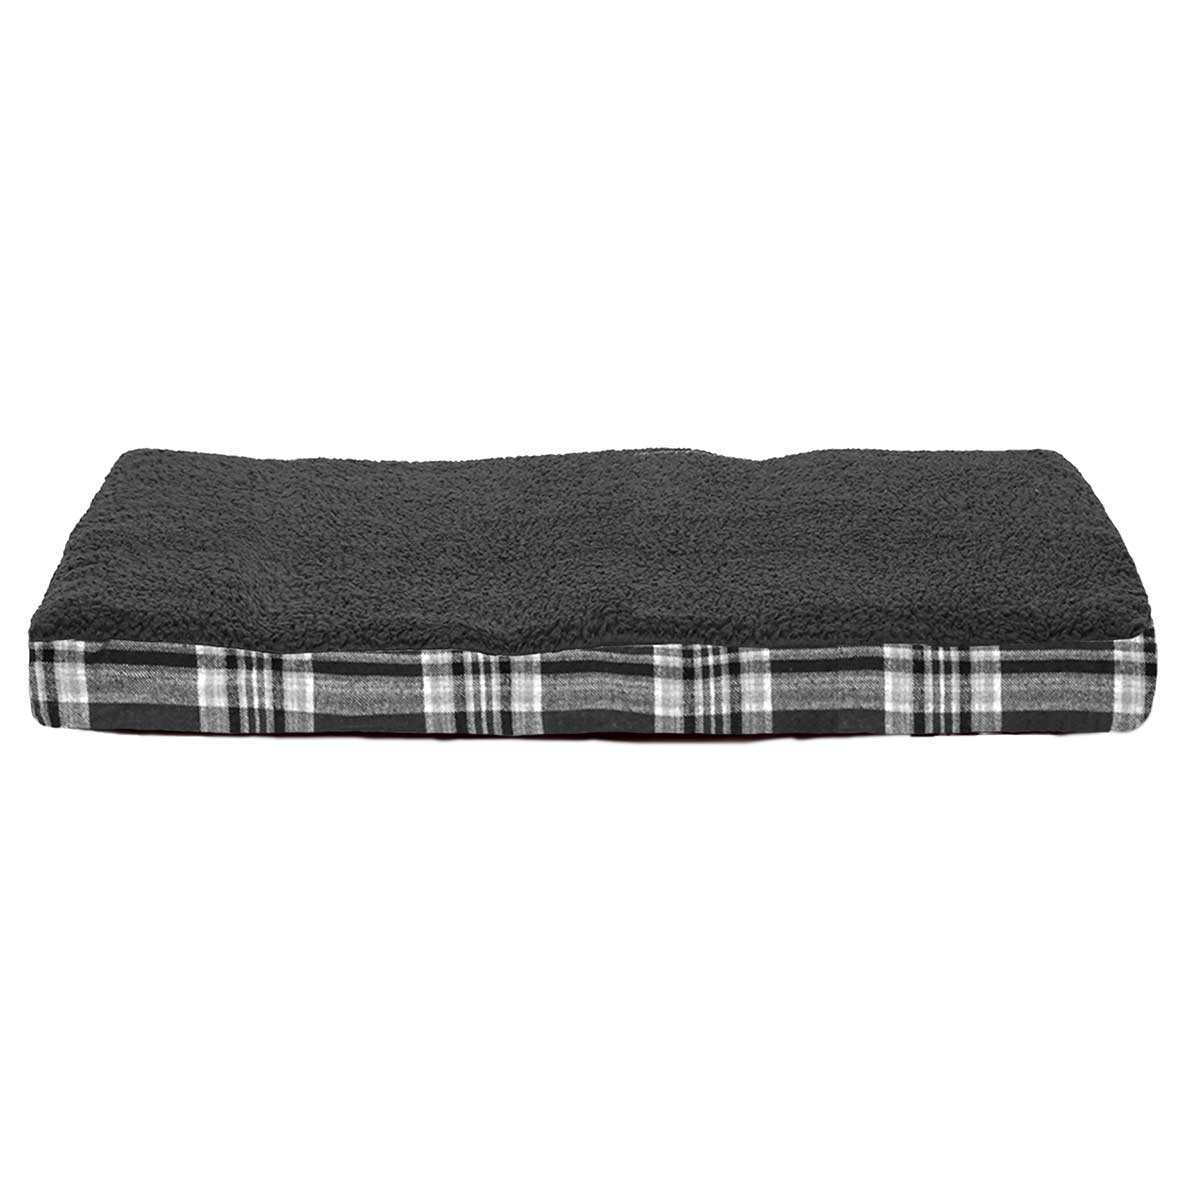 Gray Flannel FurHaven NAP Terry Top Deluxe Orthopedic Pet Bed with Memory Foam